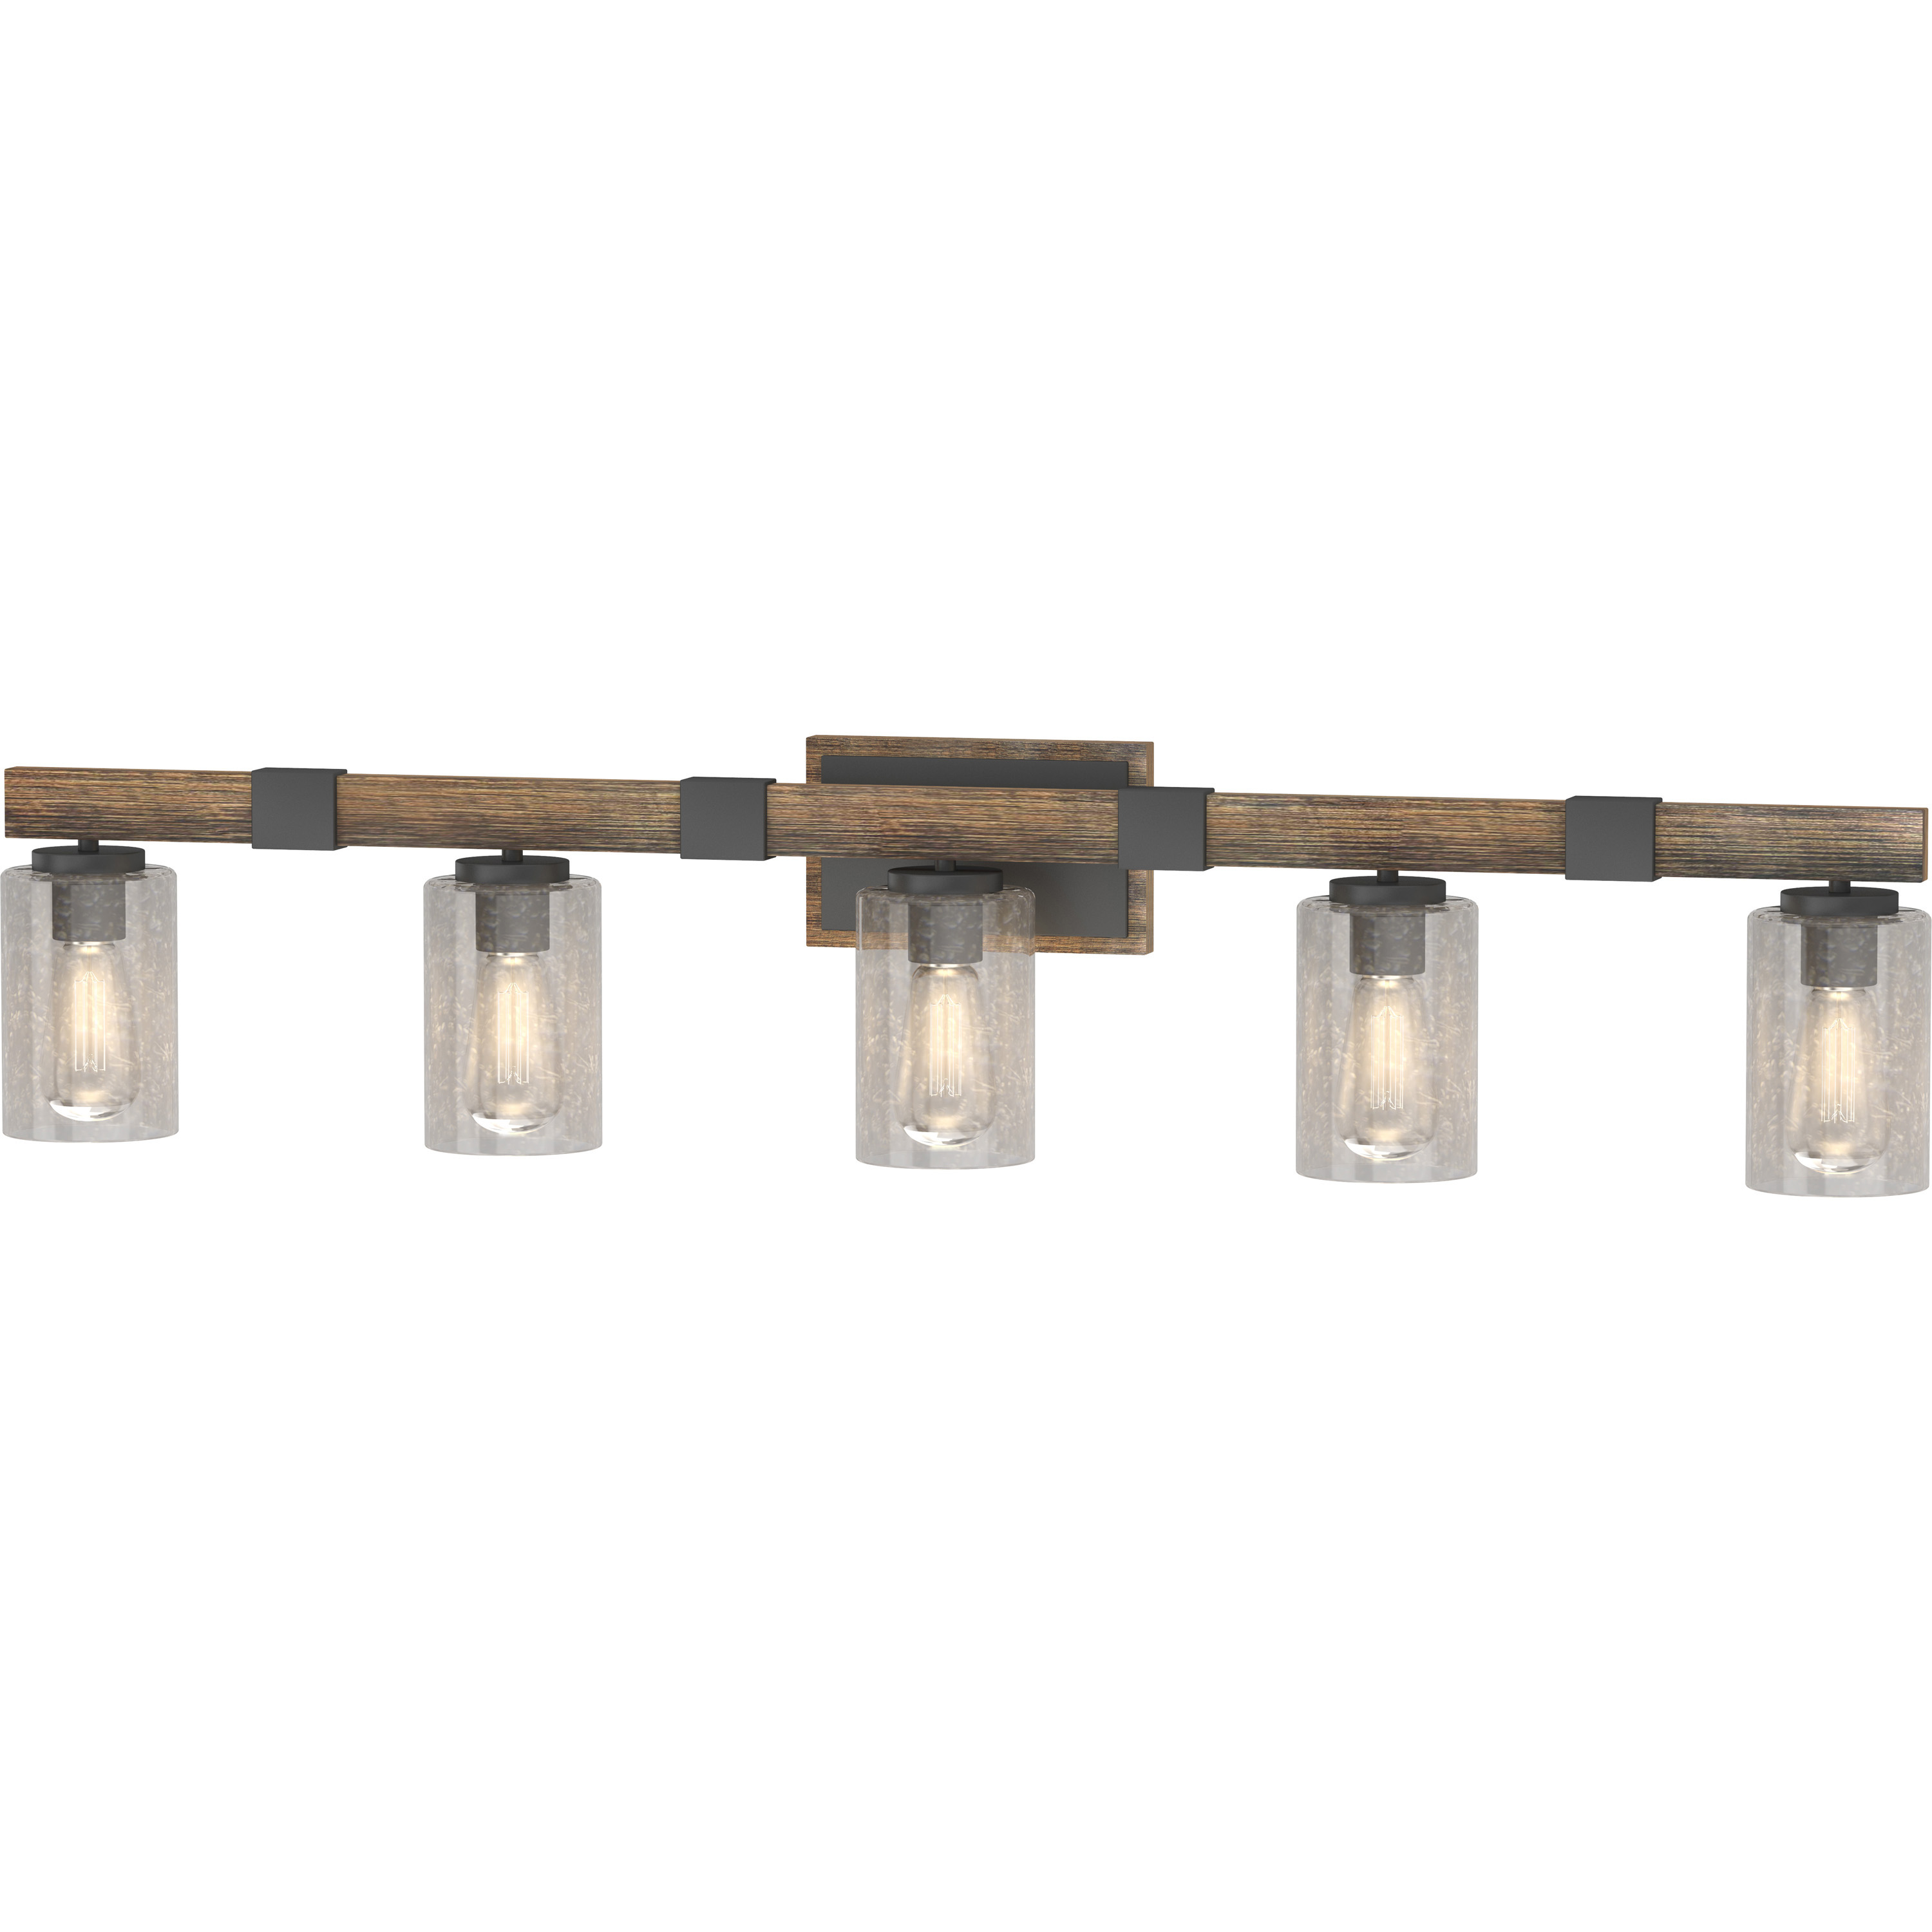 V4375 84 5 Light Indoor Black Walnut Bath Or Vanity Light Bar Or Wall Mount With Clear Seedy Bubble Glass Cylinder Shades Volume Lighting